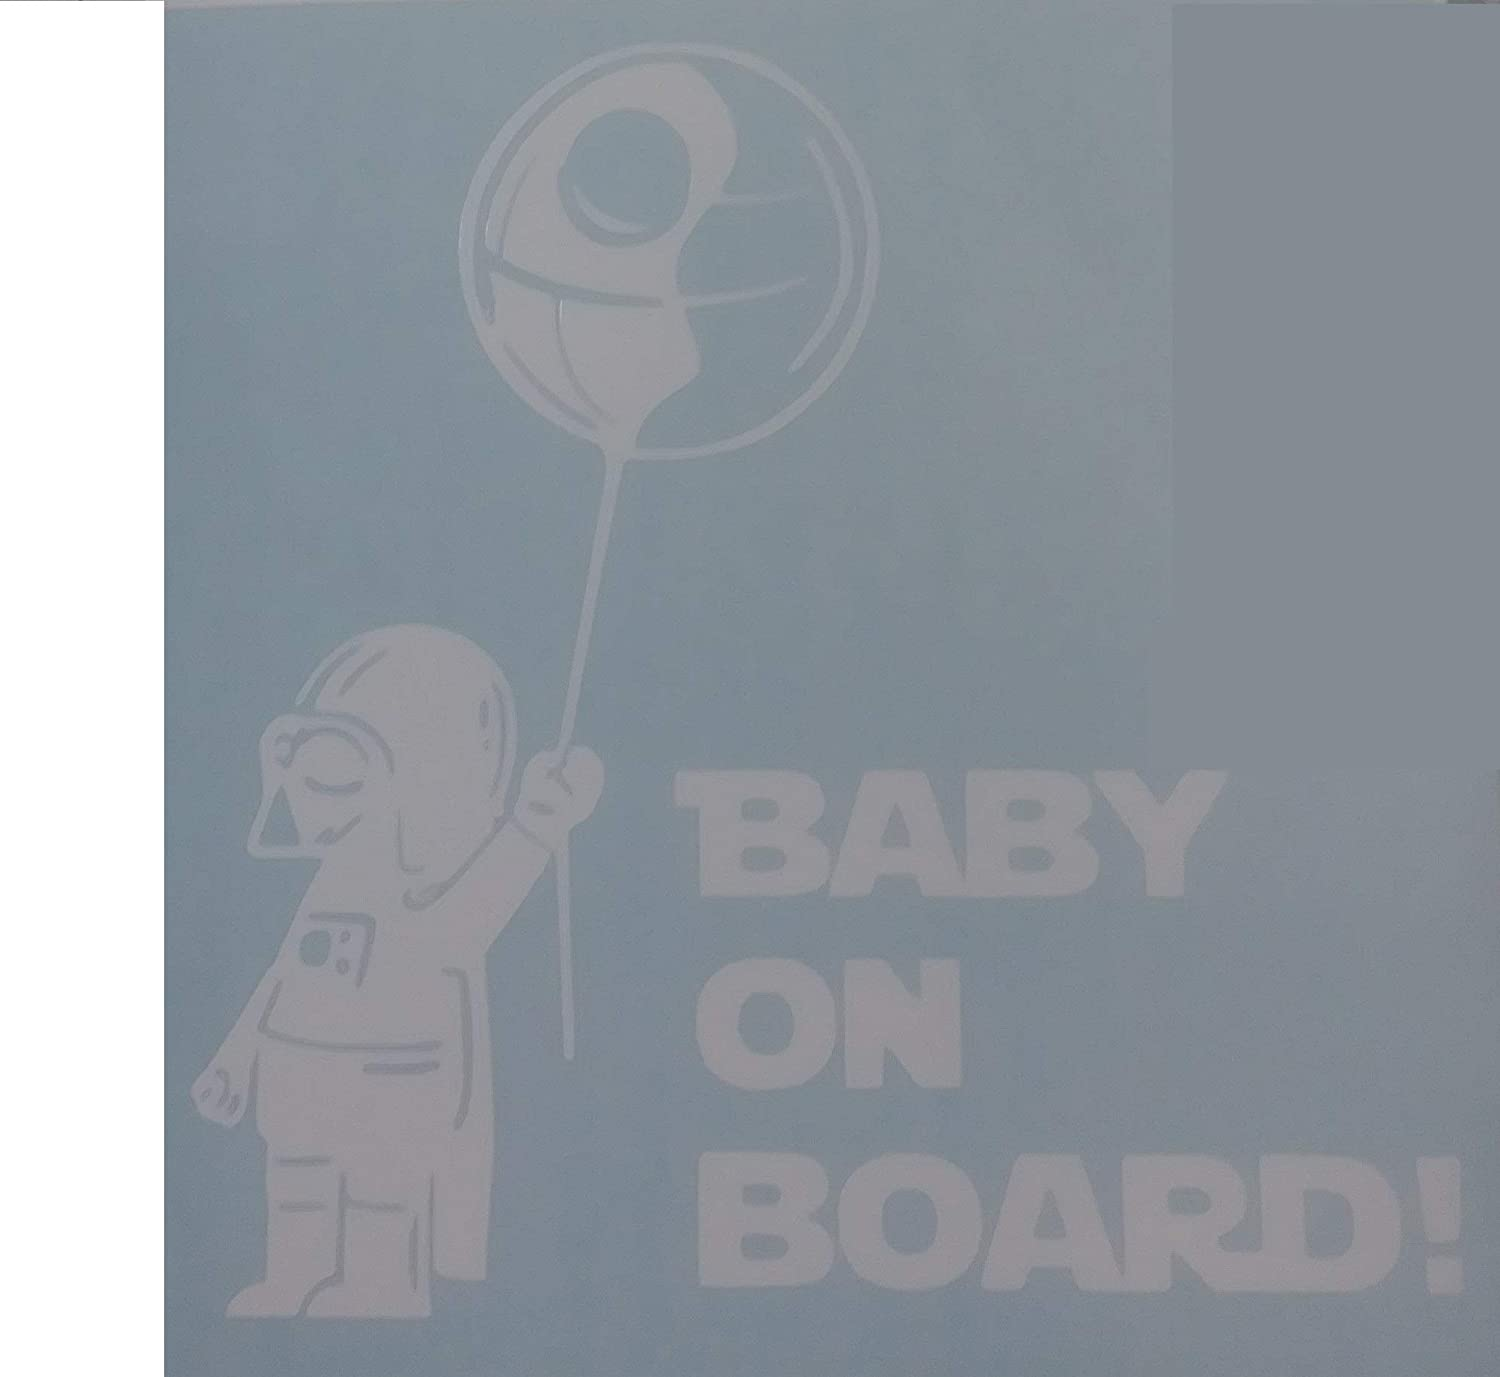 "Darth Vader Baby on Board Star Wars Sticker Decal for Laptop Car Windows Room (5.5"" inches, White)"